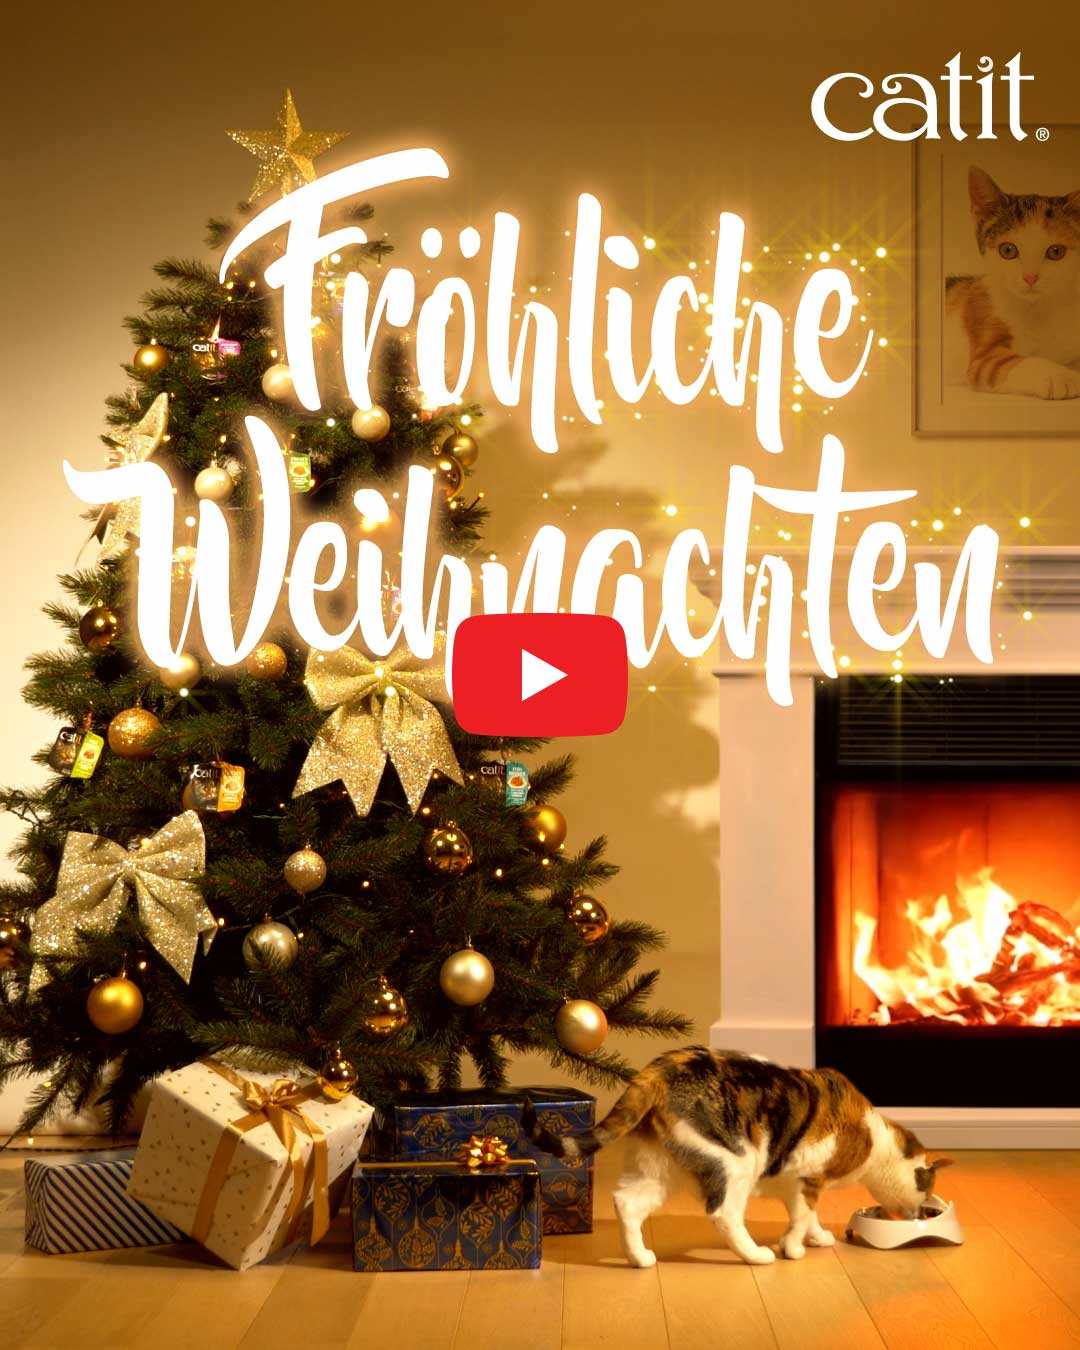 Fröliche Weinachten Video